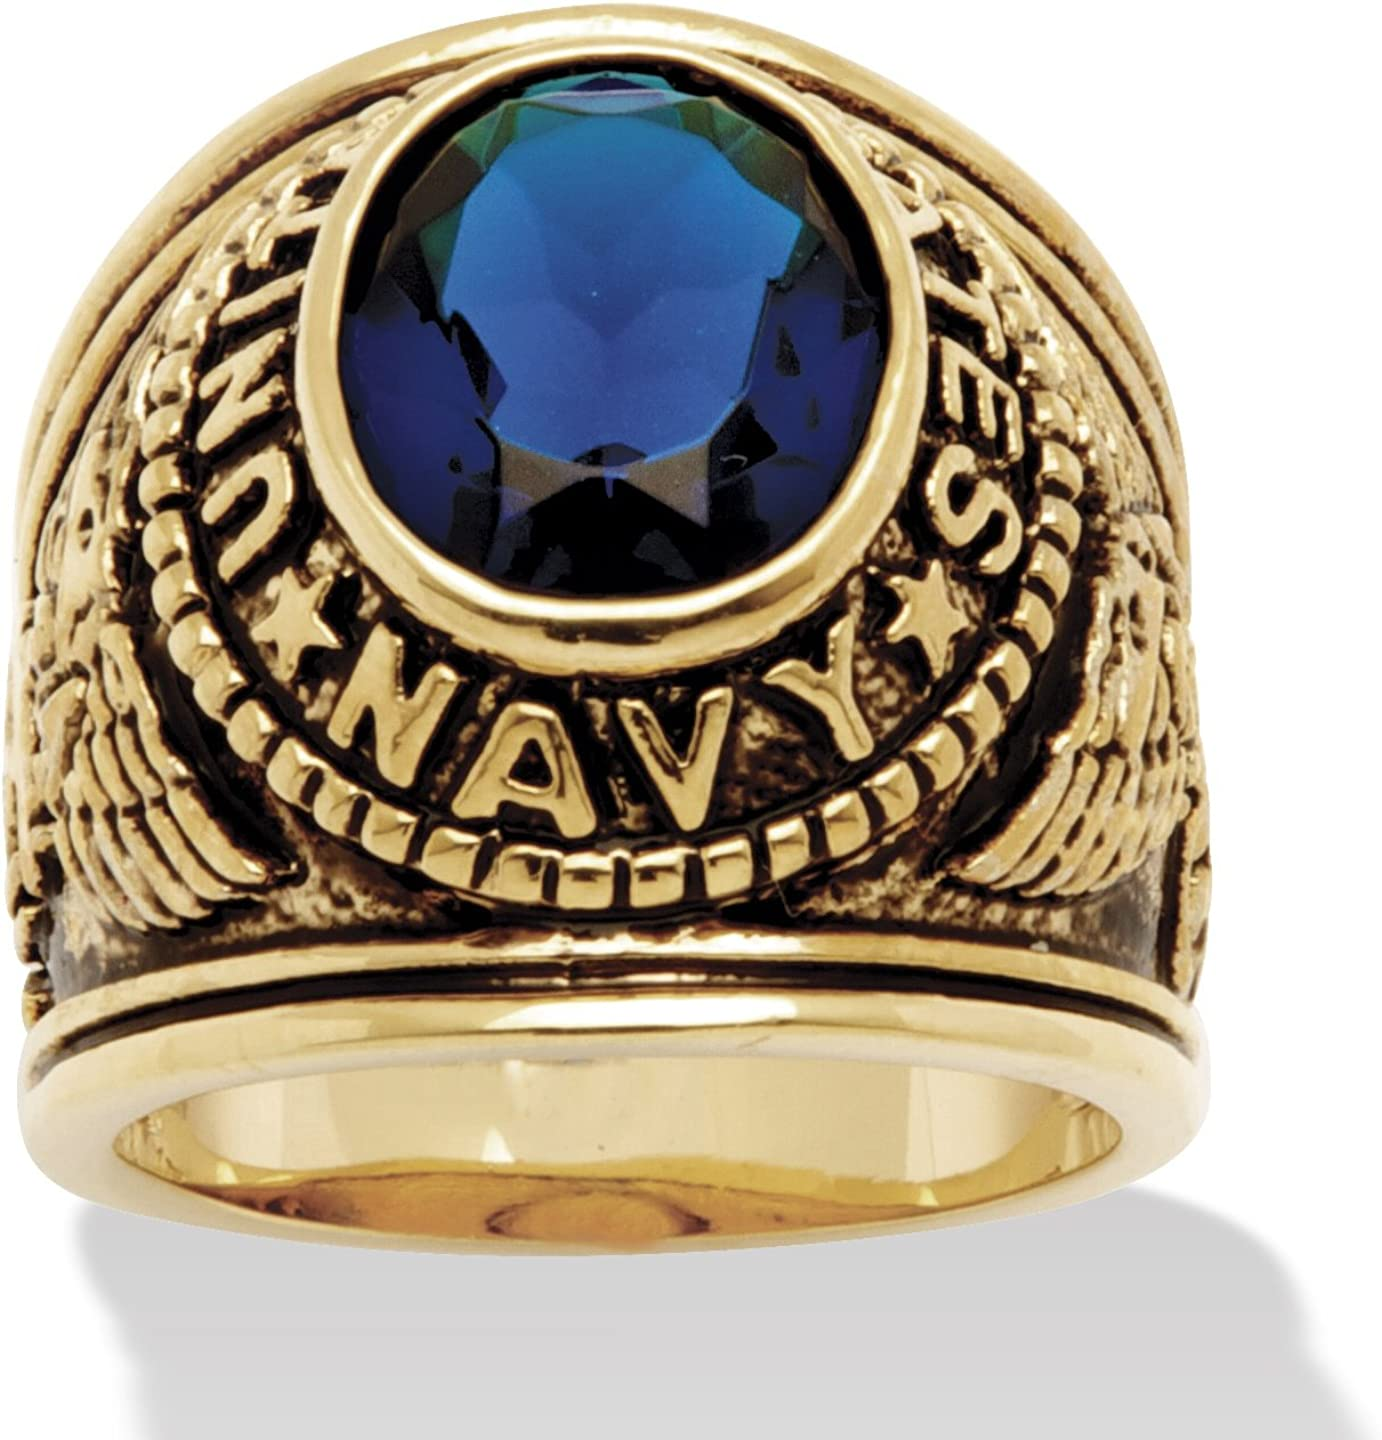 Palm Beach Jewelry Men's 14K Yellow Gold Plated Antiqued Oval Cut Simulated Blue Sapphire United States Navy Ring